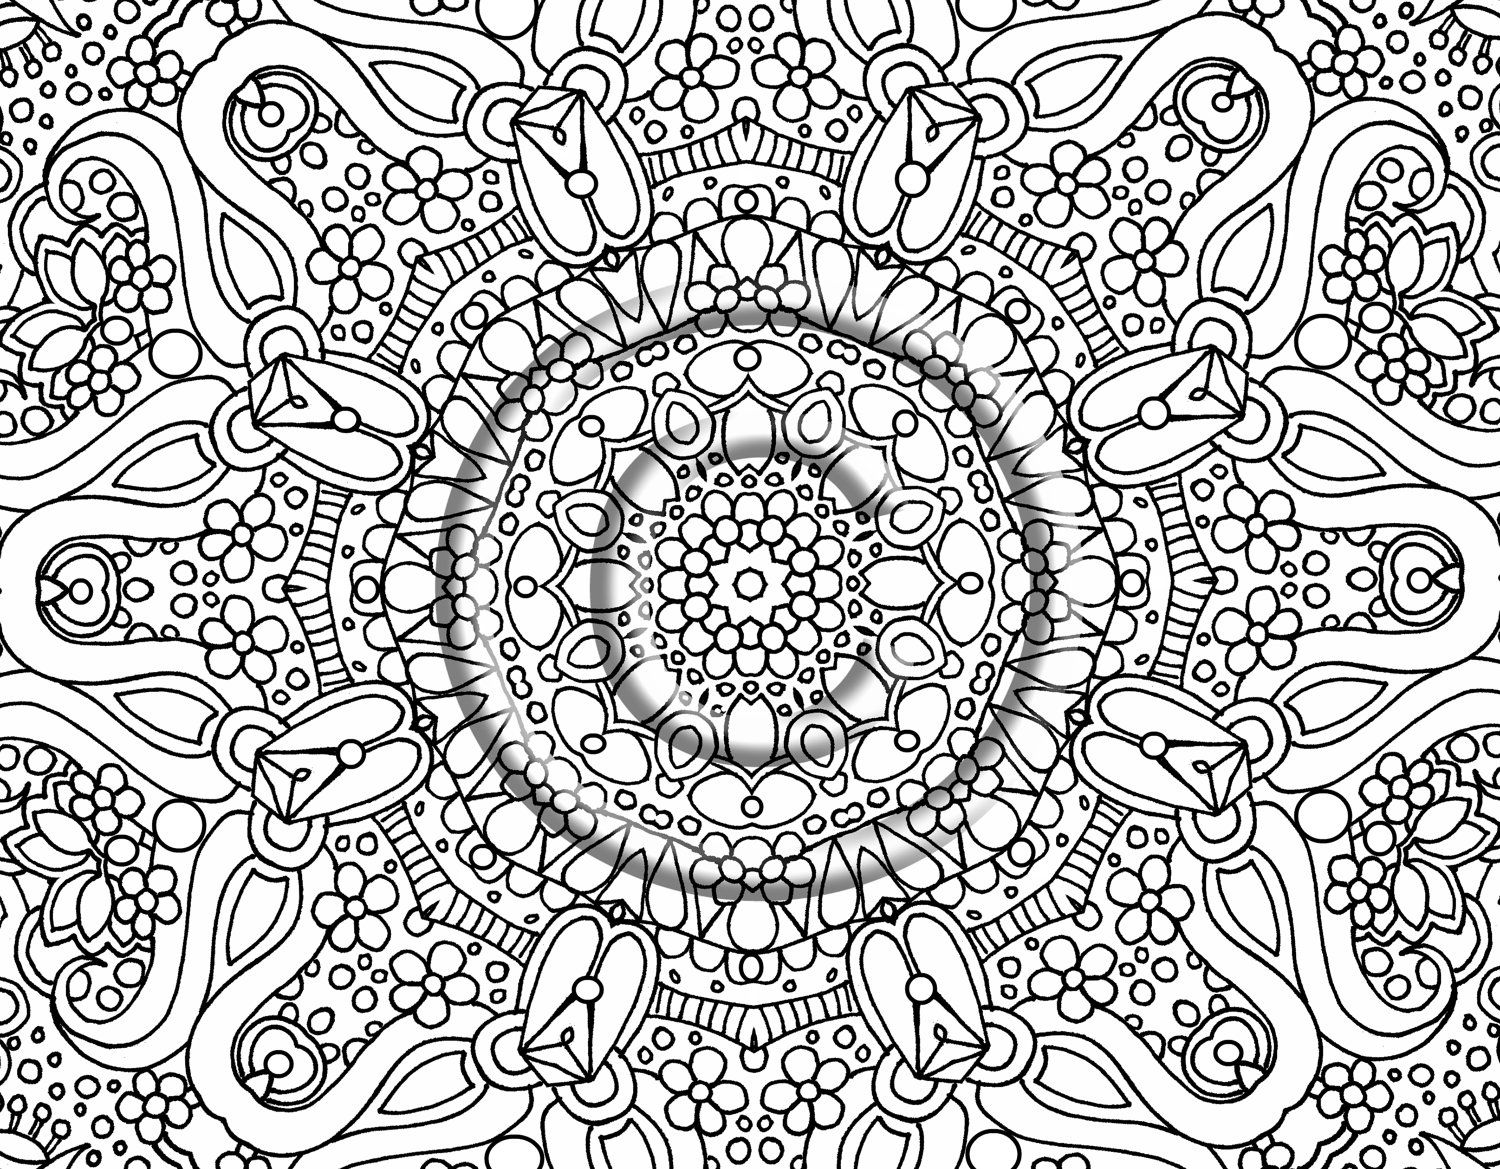 Abstract Animal Coloring Pages